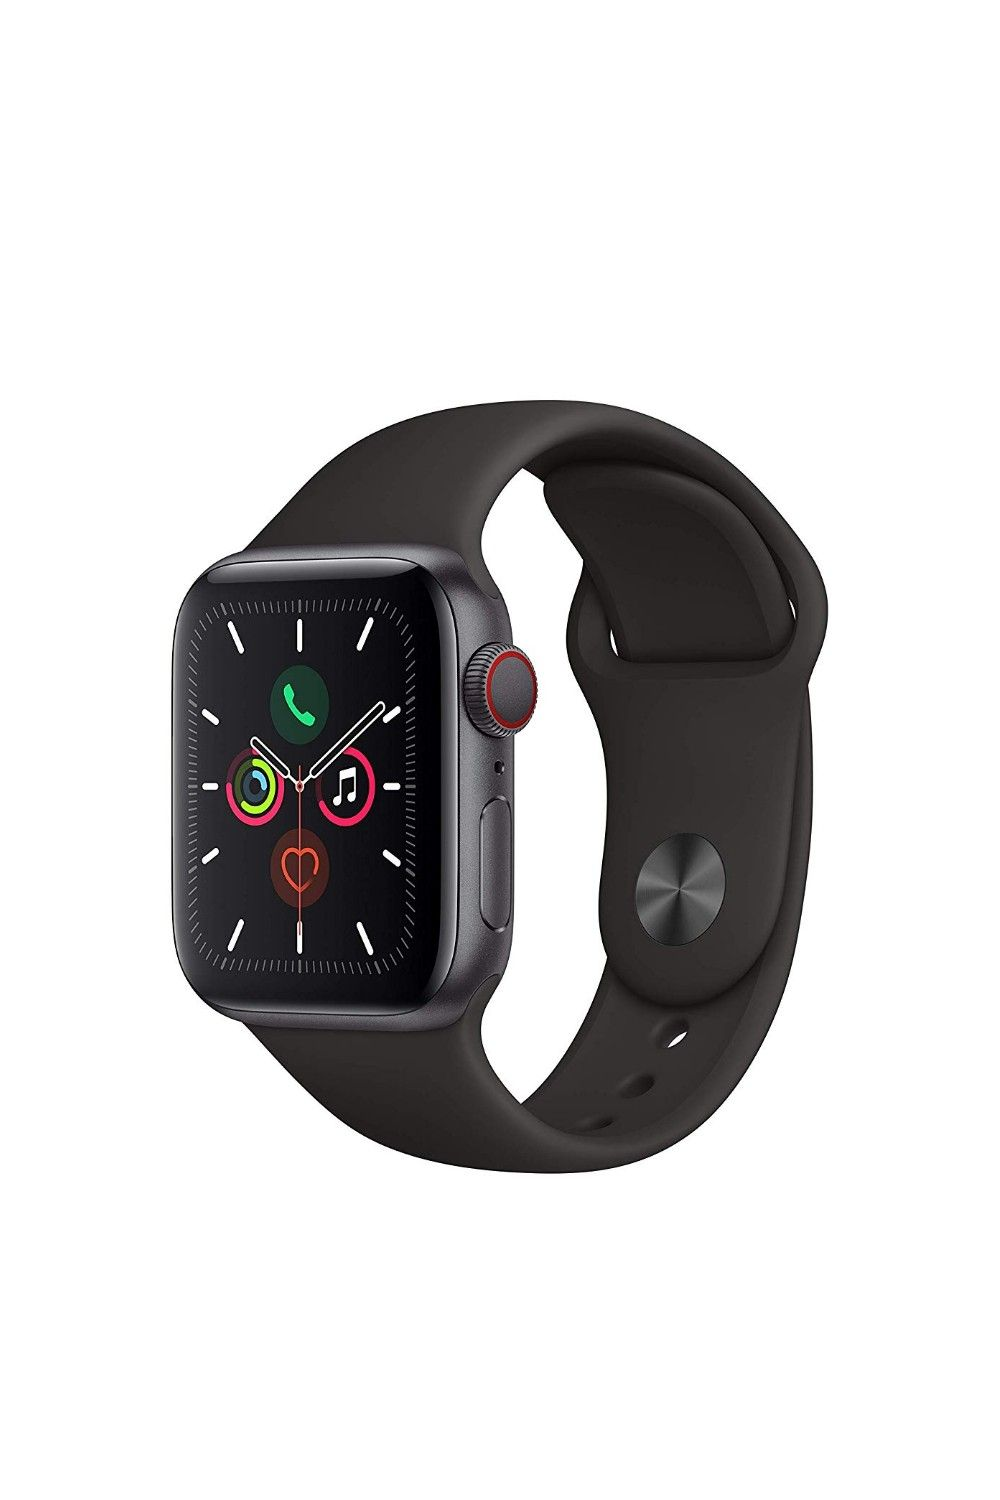 Apple Watch Gold Stainless Steel Case with Sport Band in